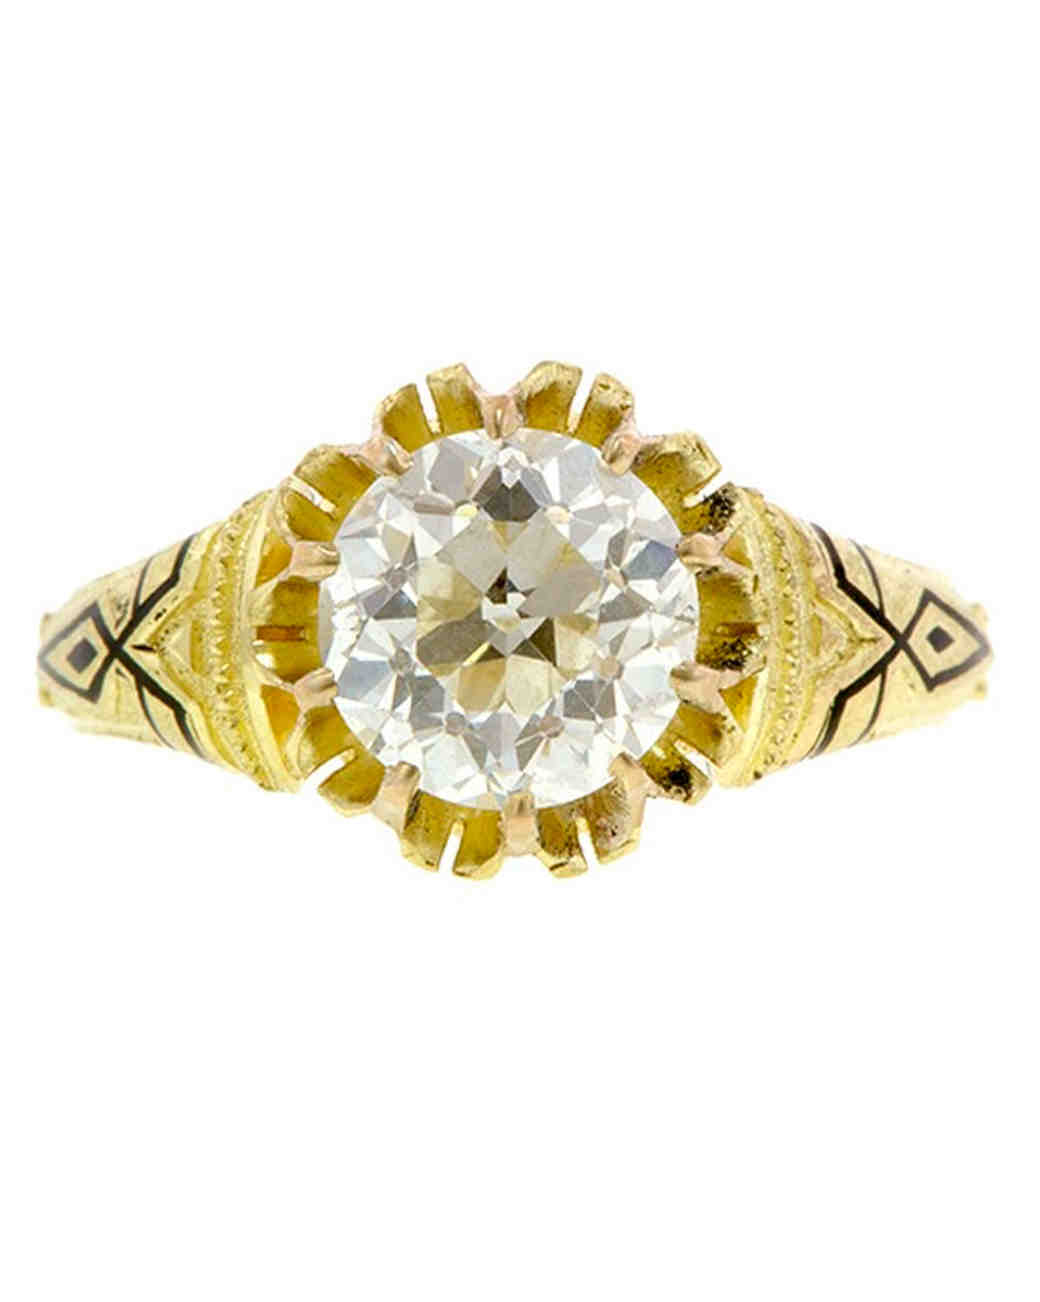 buying-vintage-engagement-ring-doyle-doyle-victorian-solitaire-0215.jpg